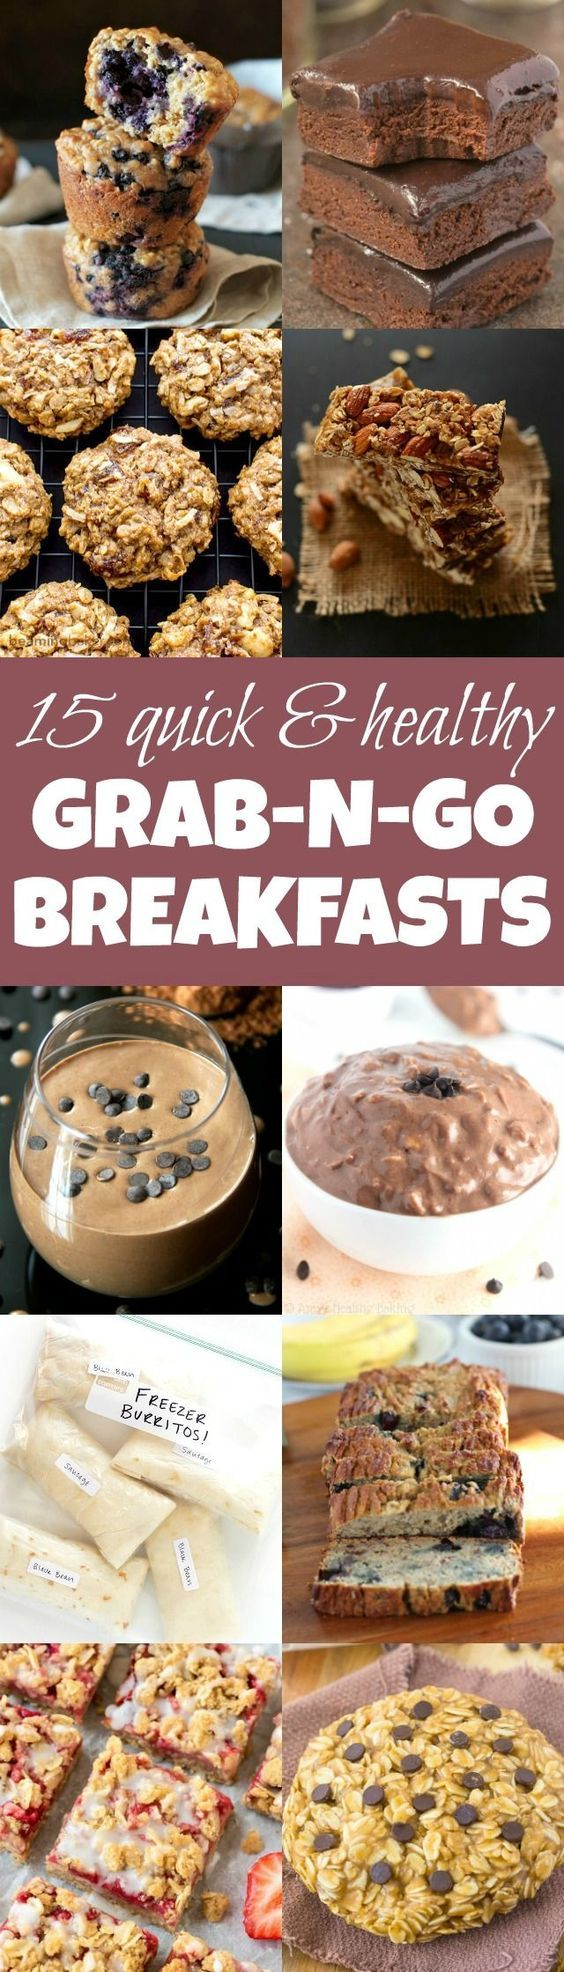 No time for breakfast? No problem!  You won't have to miss out on the BEST meal of the day with these quick and healthy breakfast recipes that you can literally grab on your way out the door!